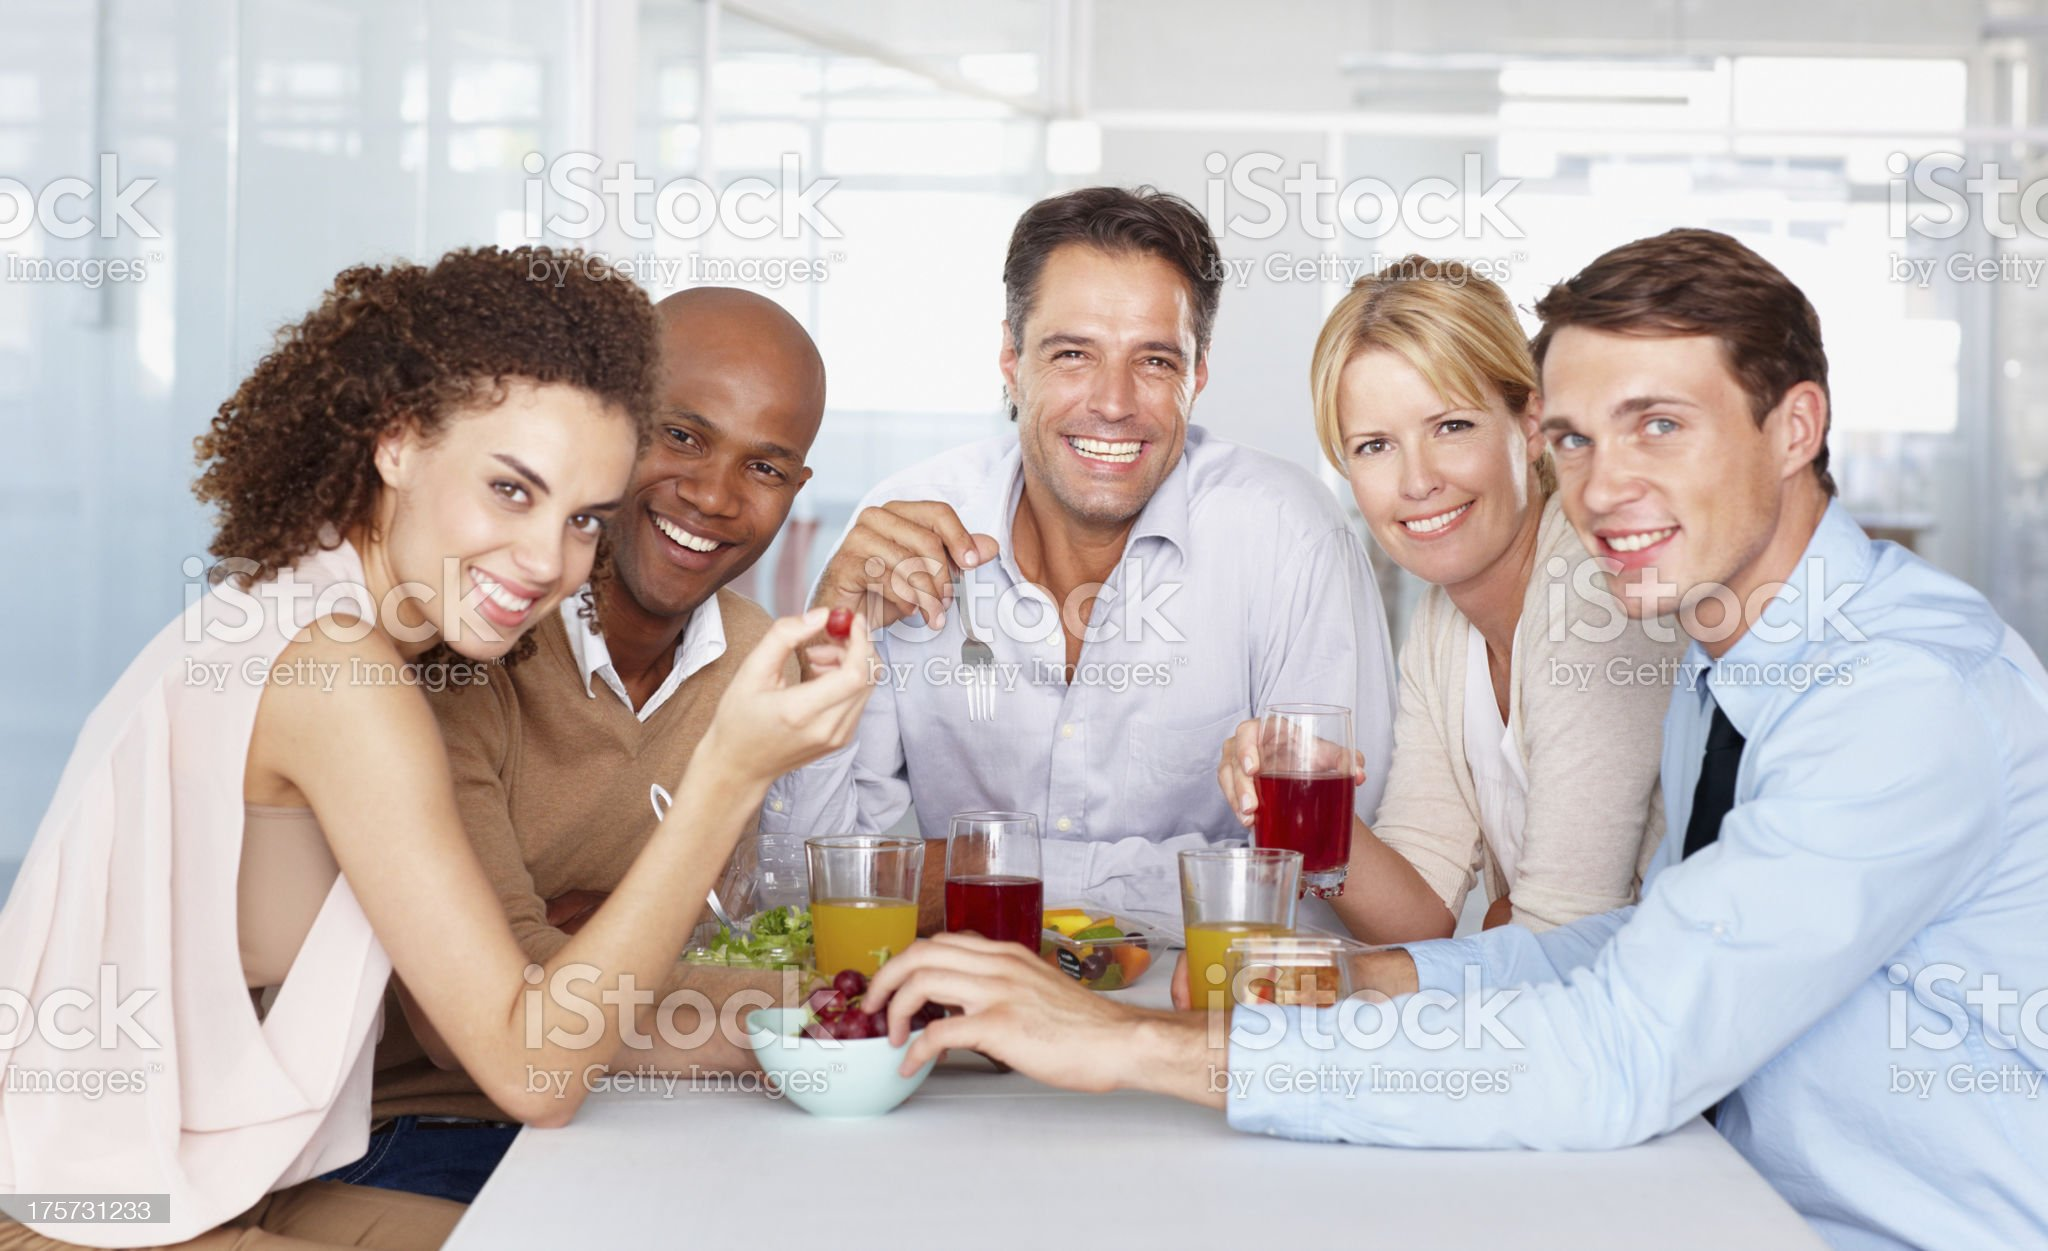 Lunching together! royalty-free stock photo